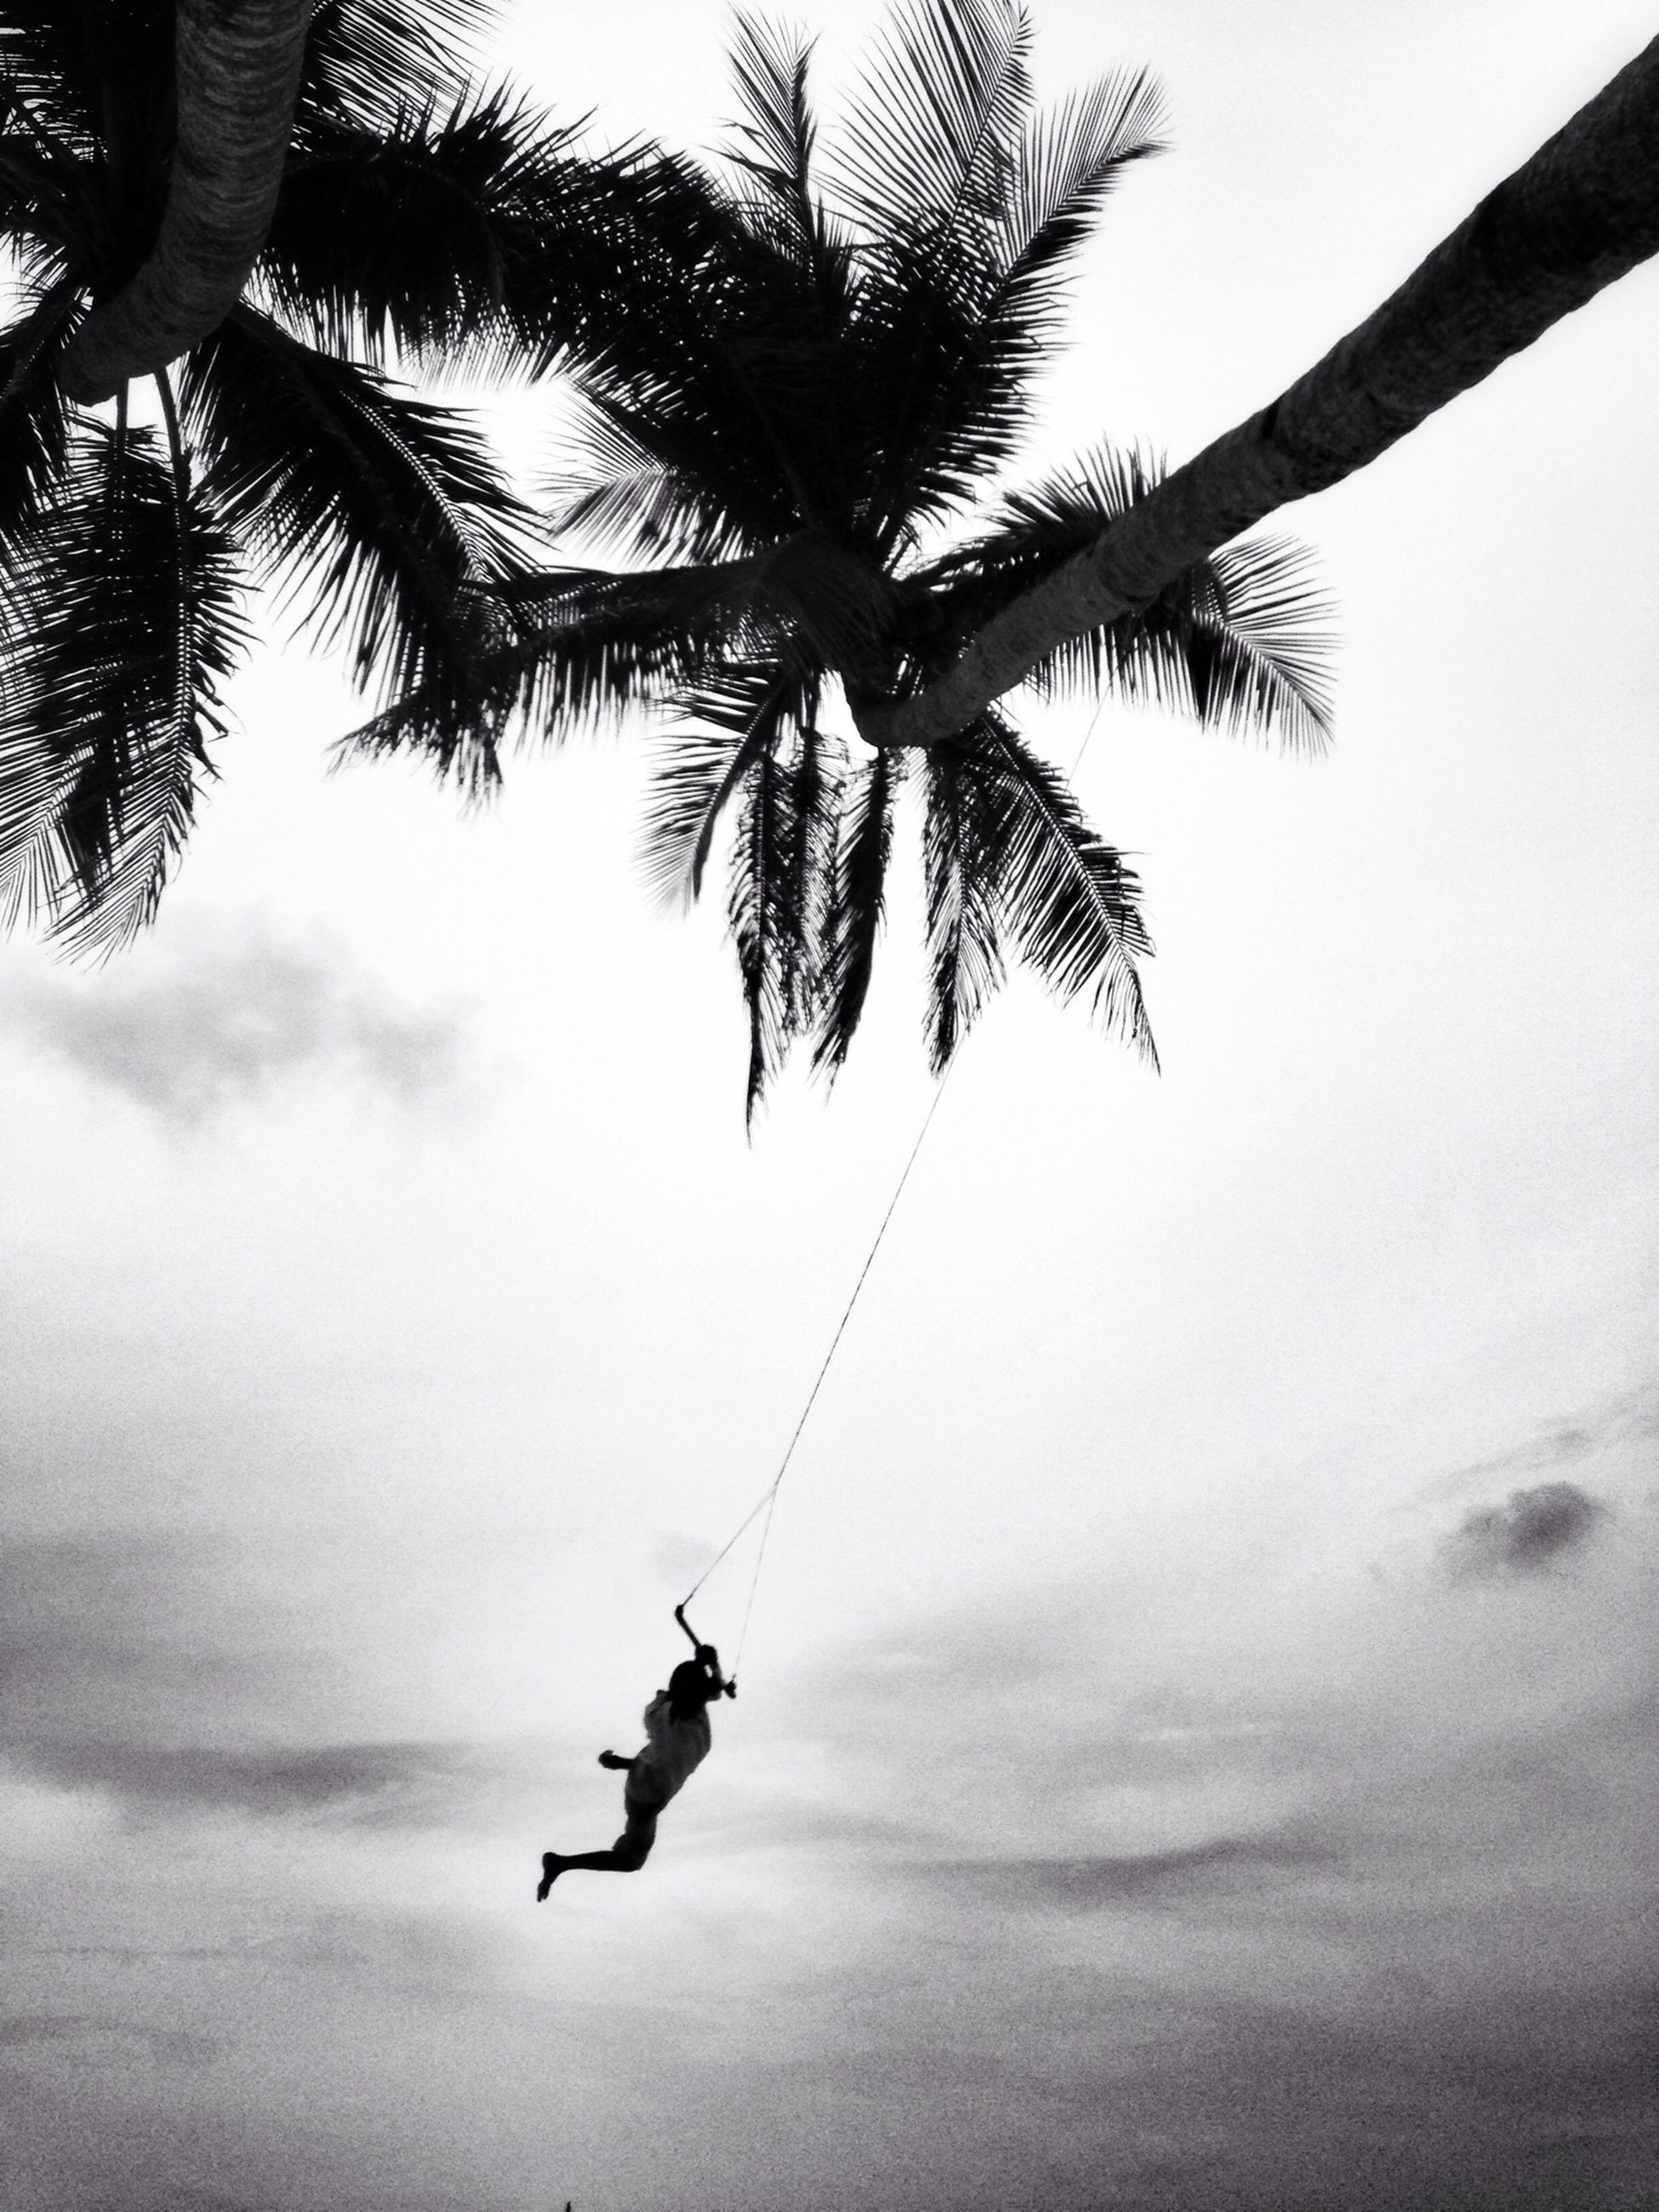 silhouette, tree, sky, palm tree, low angle view, transportation, nature, flying, mid-air, tranquility, mode of transport, leisure activity, beauty in nature, cloud - sky, day, outdoors, branch, tranquil scene